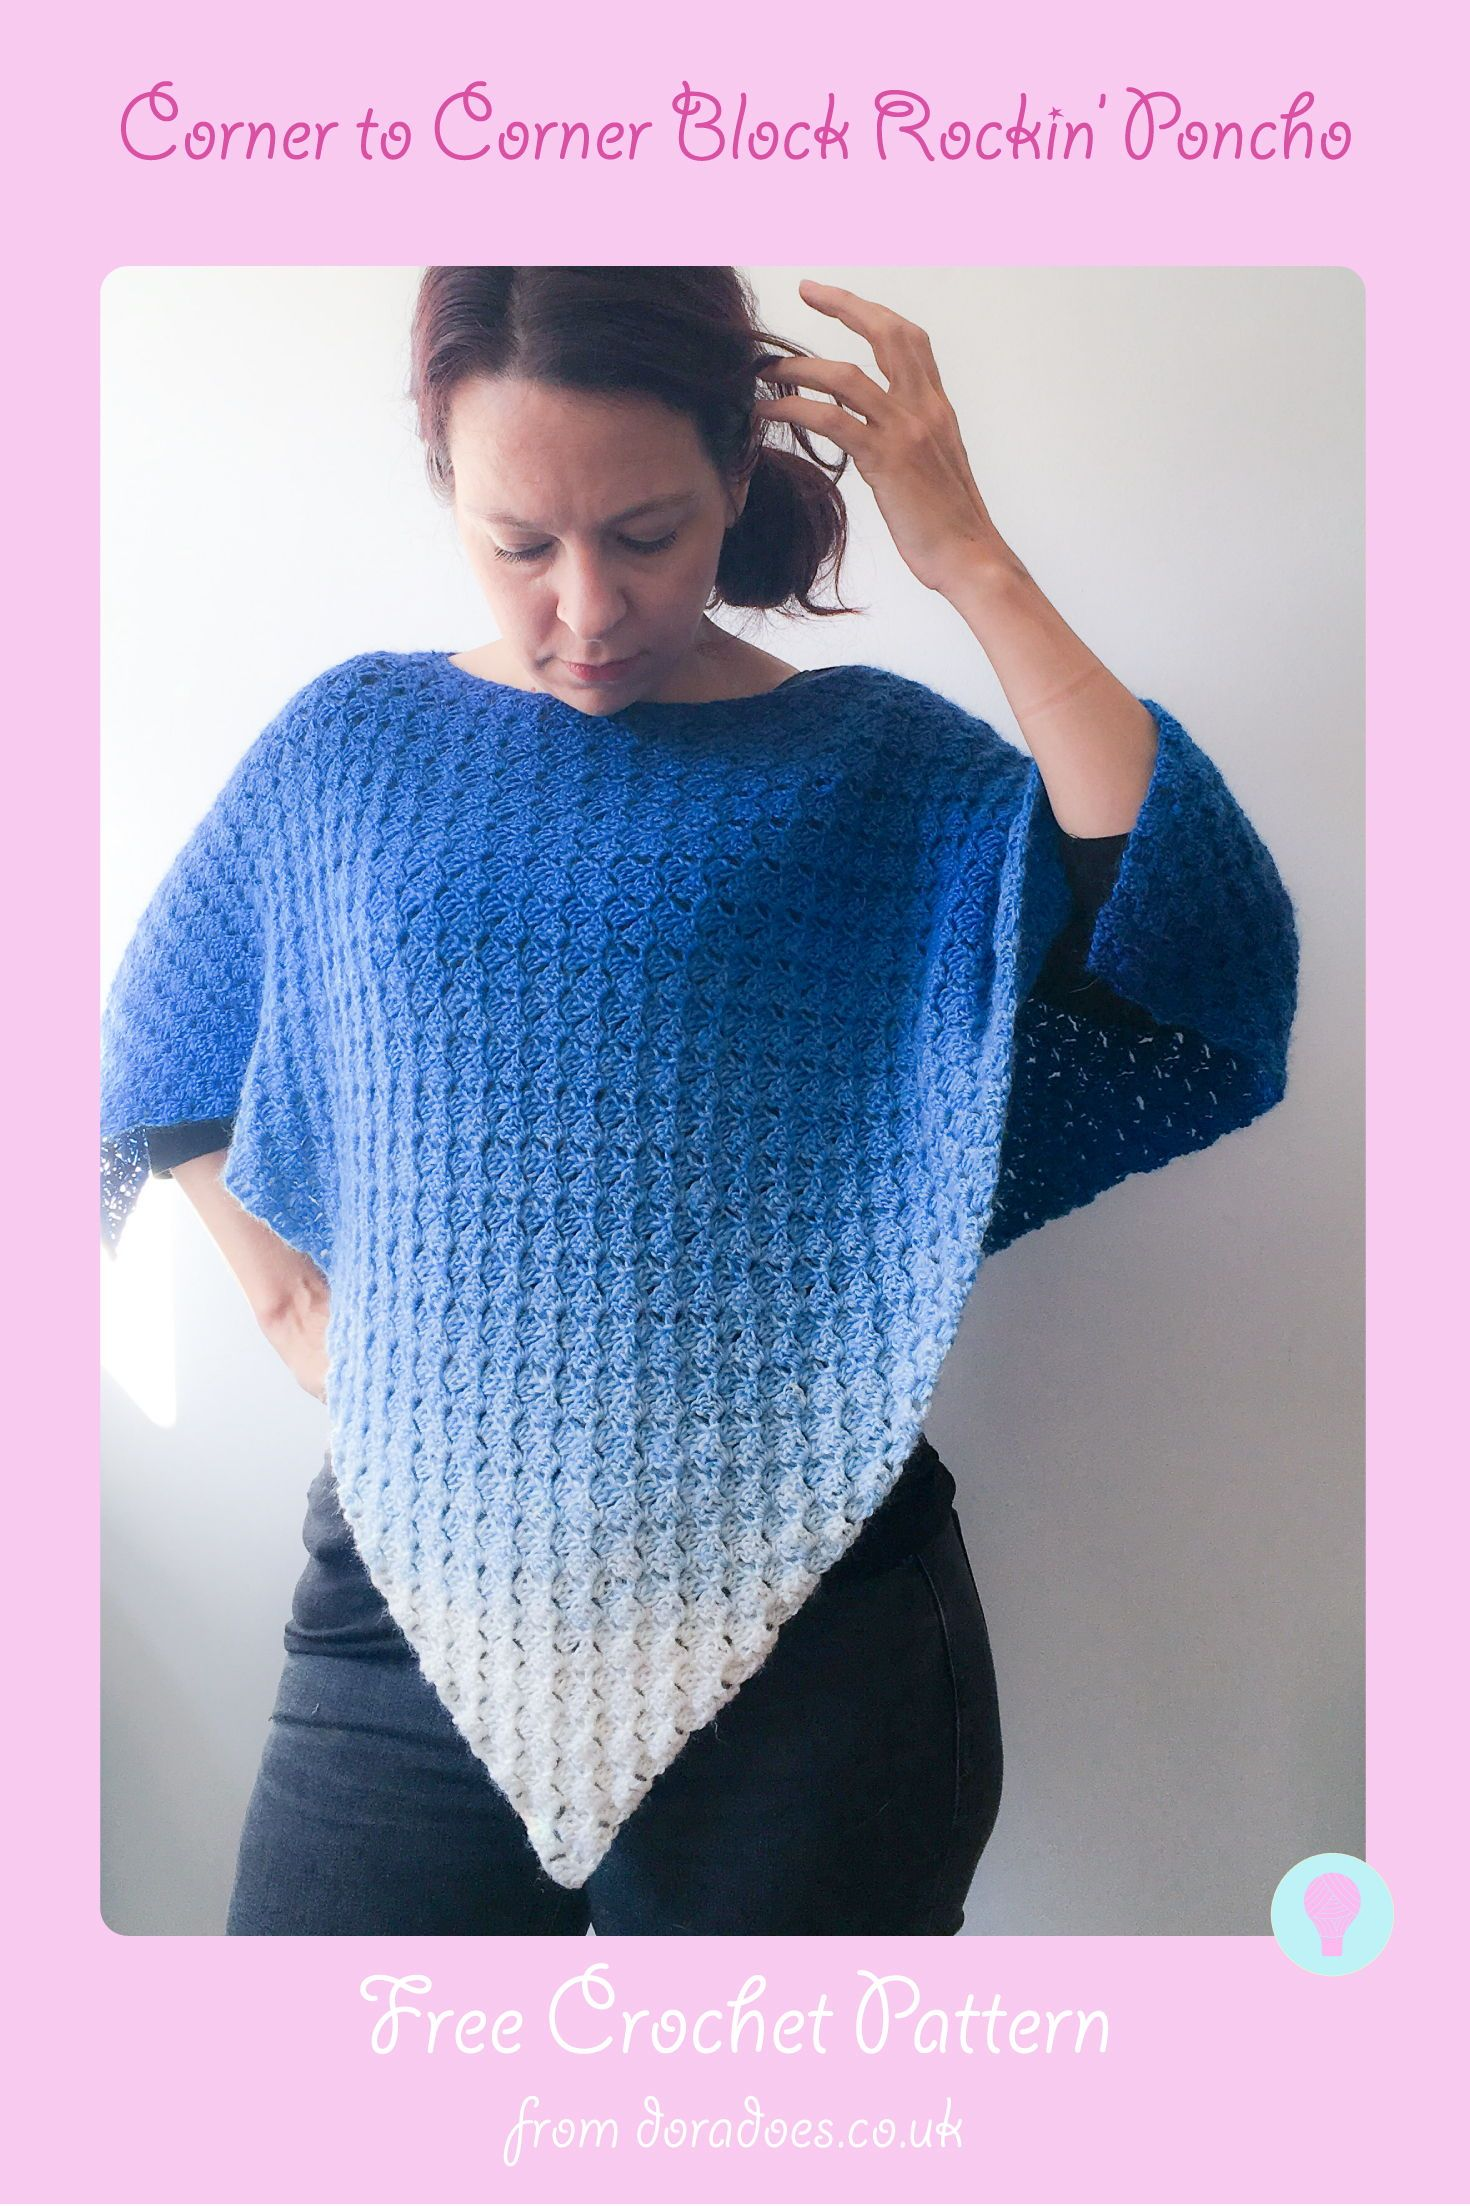 f145e0a8fc80eb Free Crochet Pattern for the Corner to Corner (c2c) Block Rockin Poncho.  Easy poncho pattern for beginner crocheters